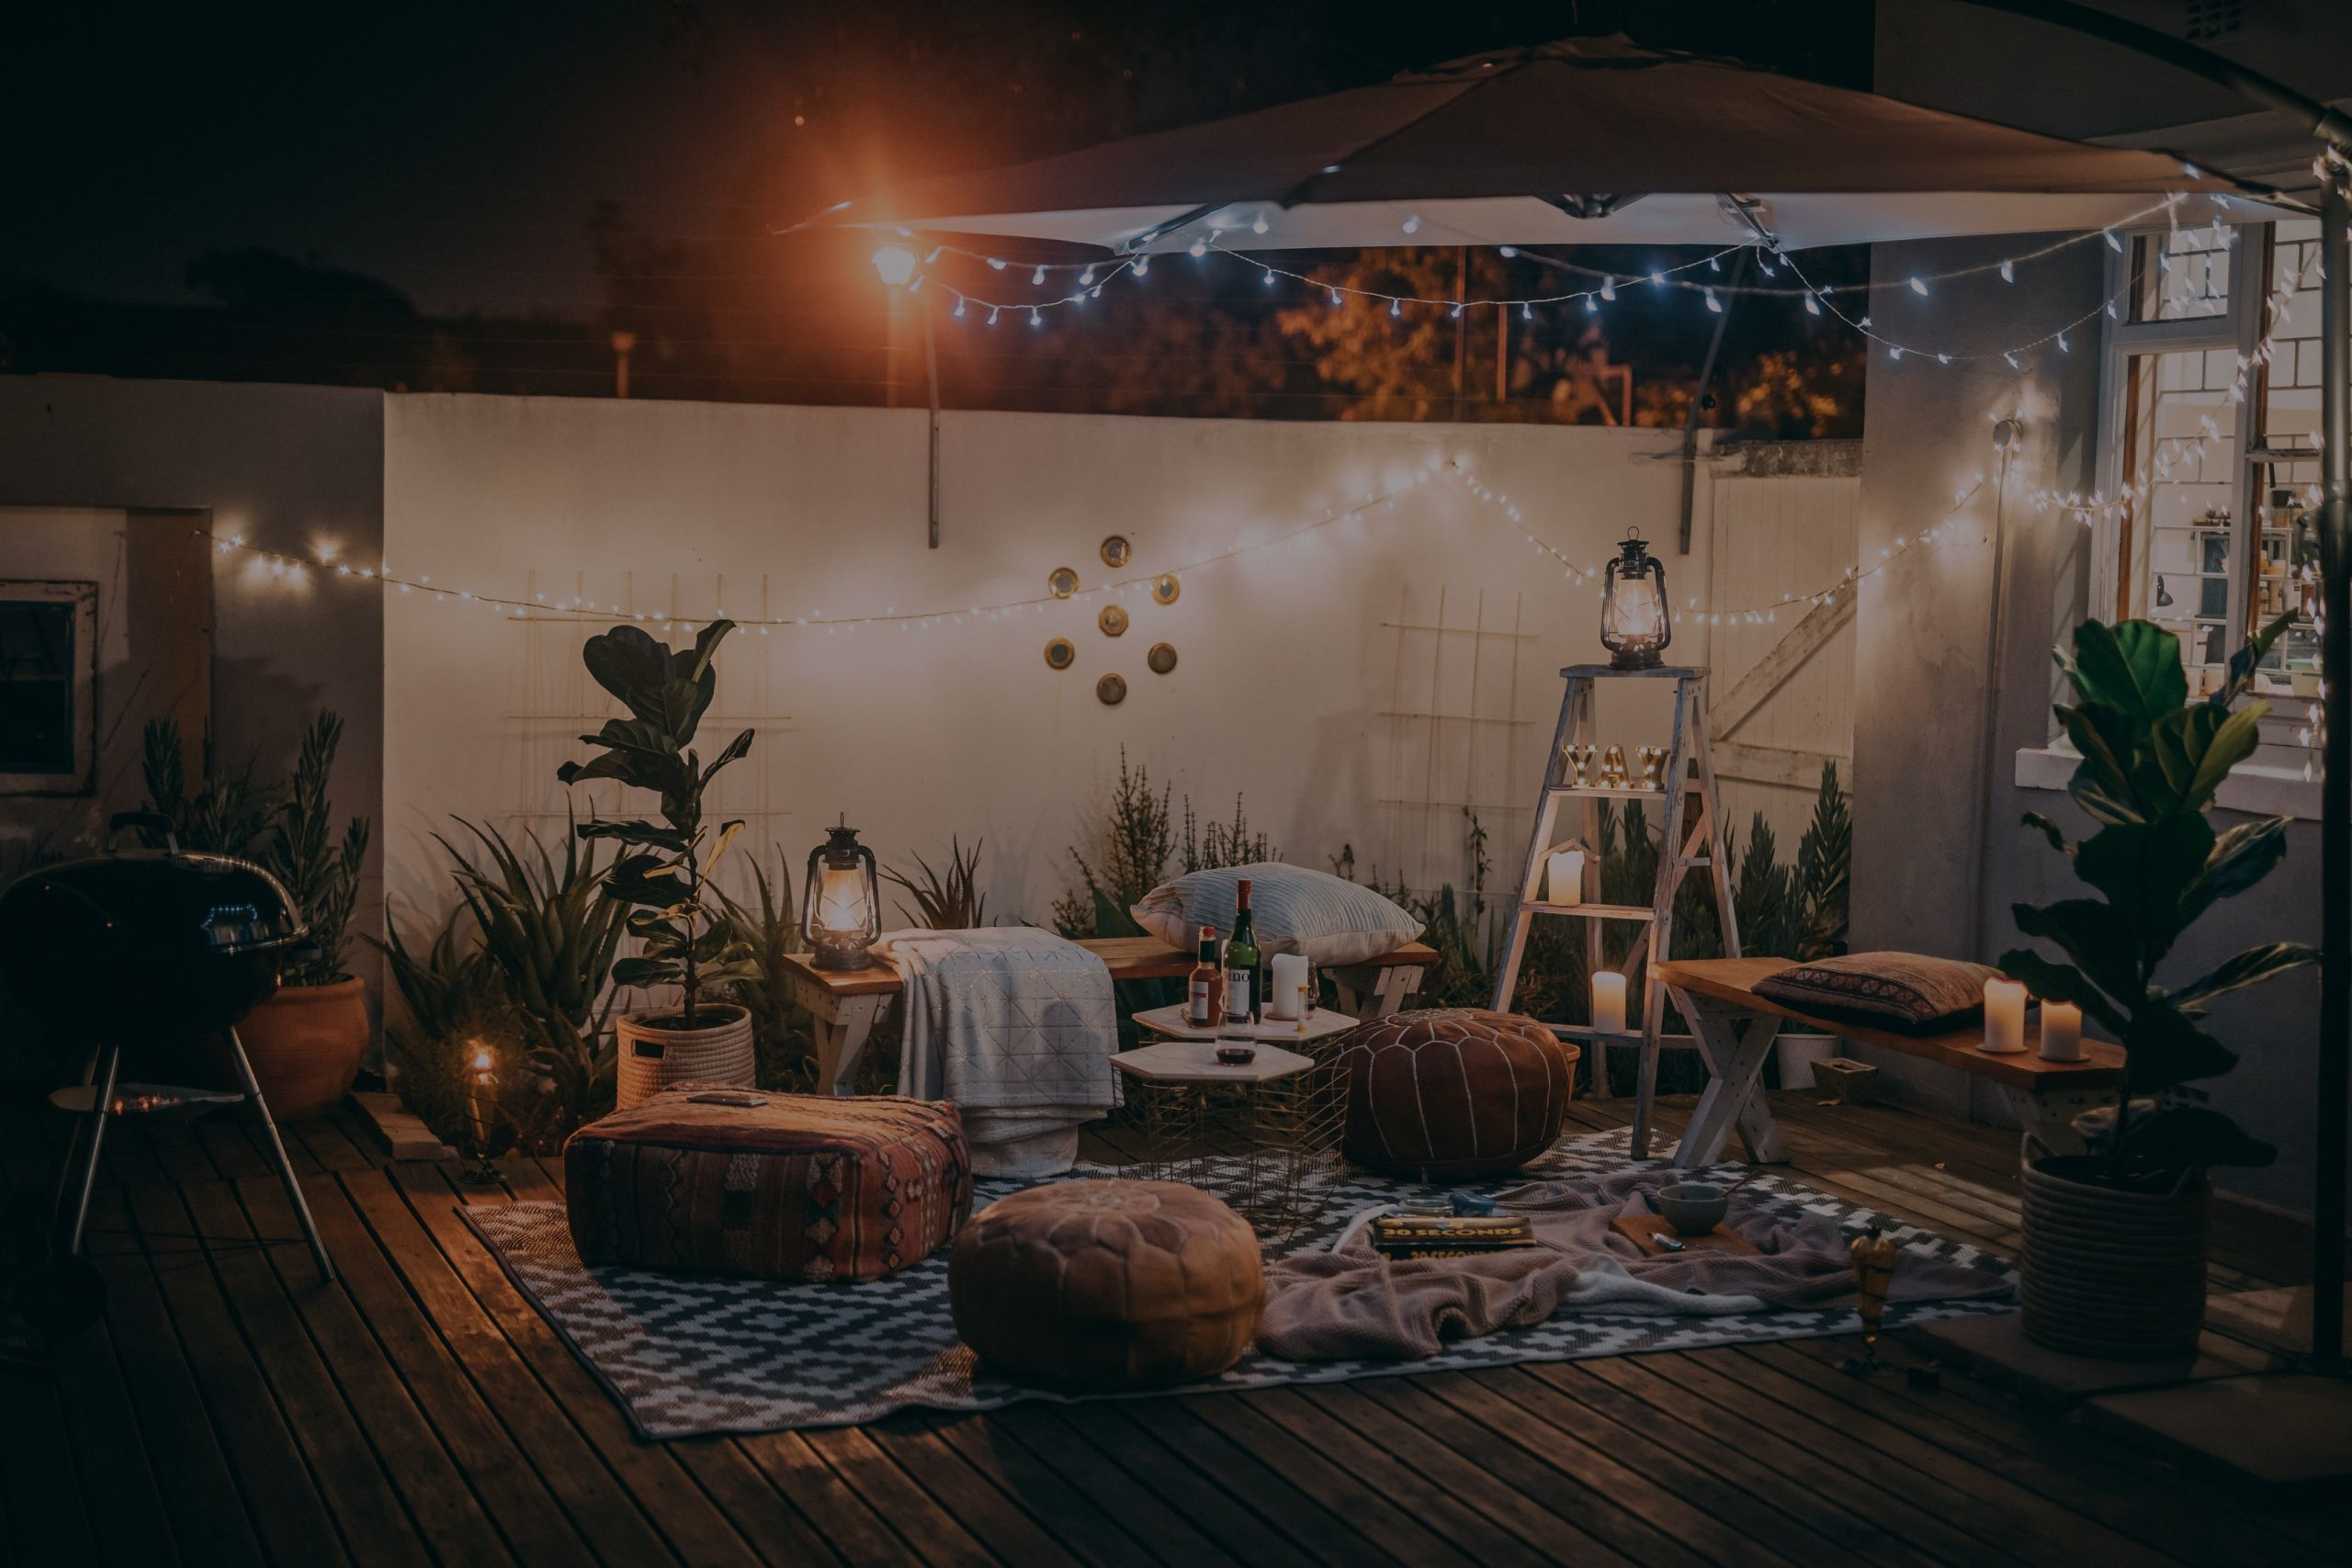 5 Ways to Stage a Cozy Outdoor Space for Cooler Weather